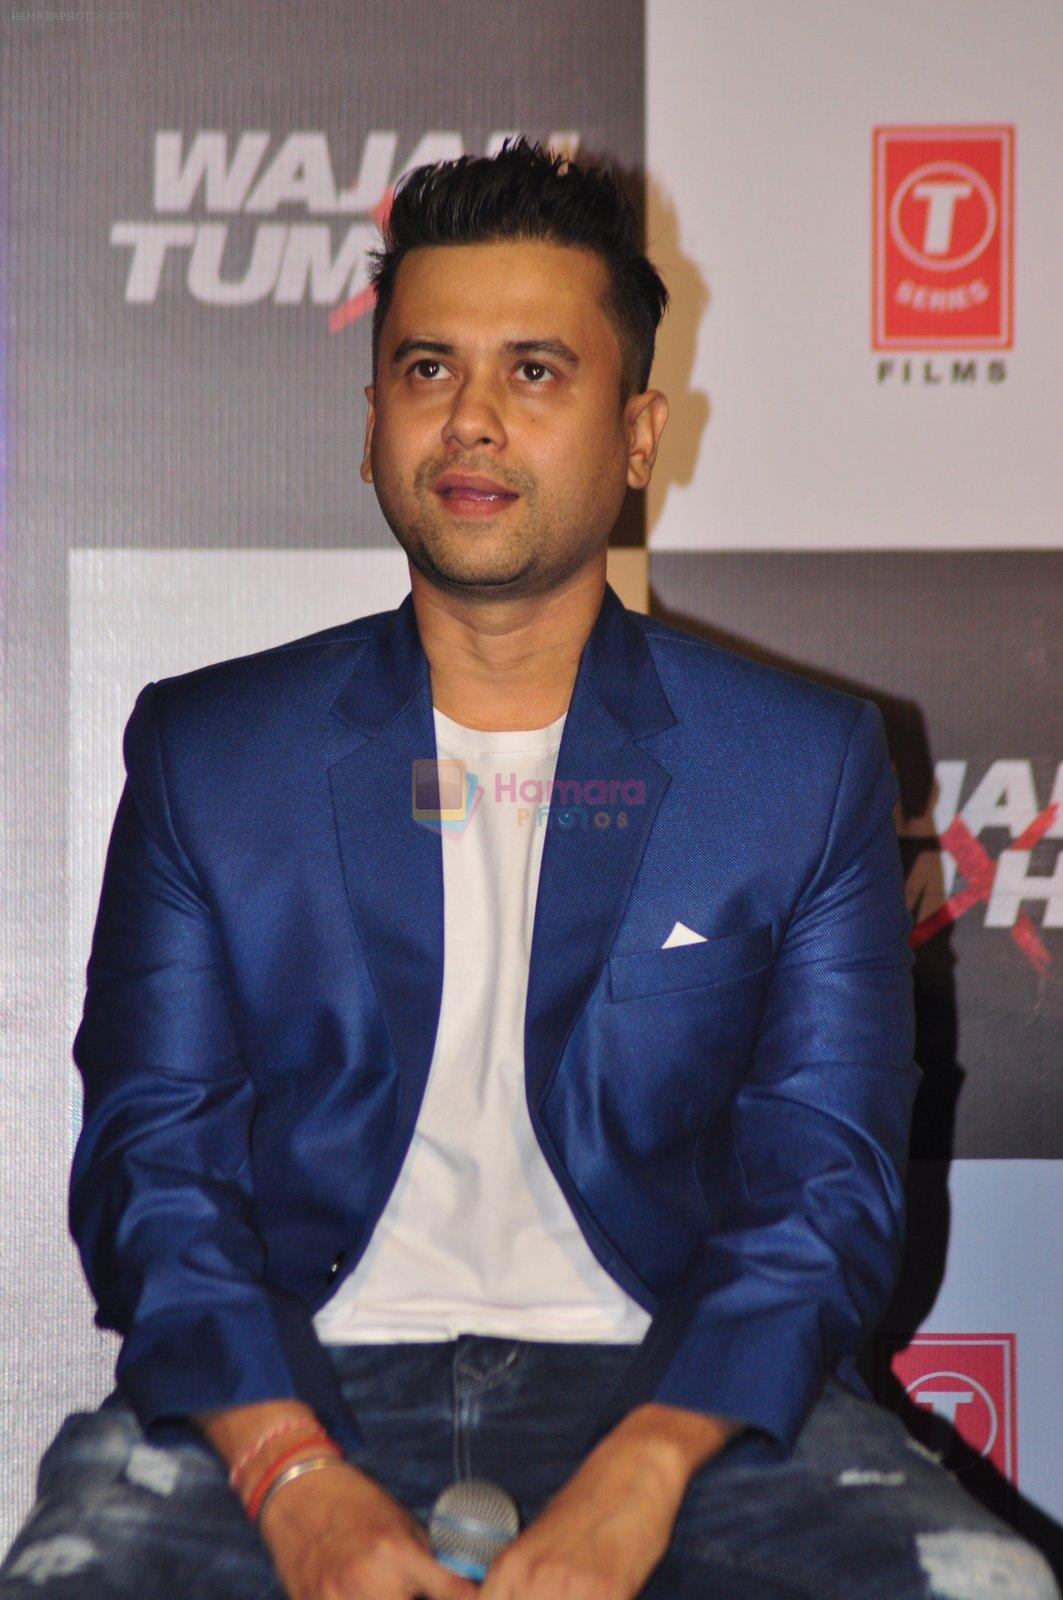 Vishal Pandya at Wajah Tum Ho film event on 14th Oct 2016